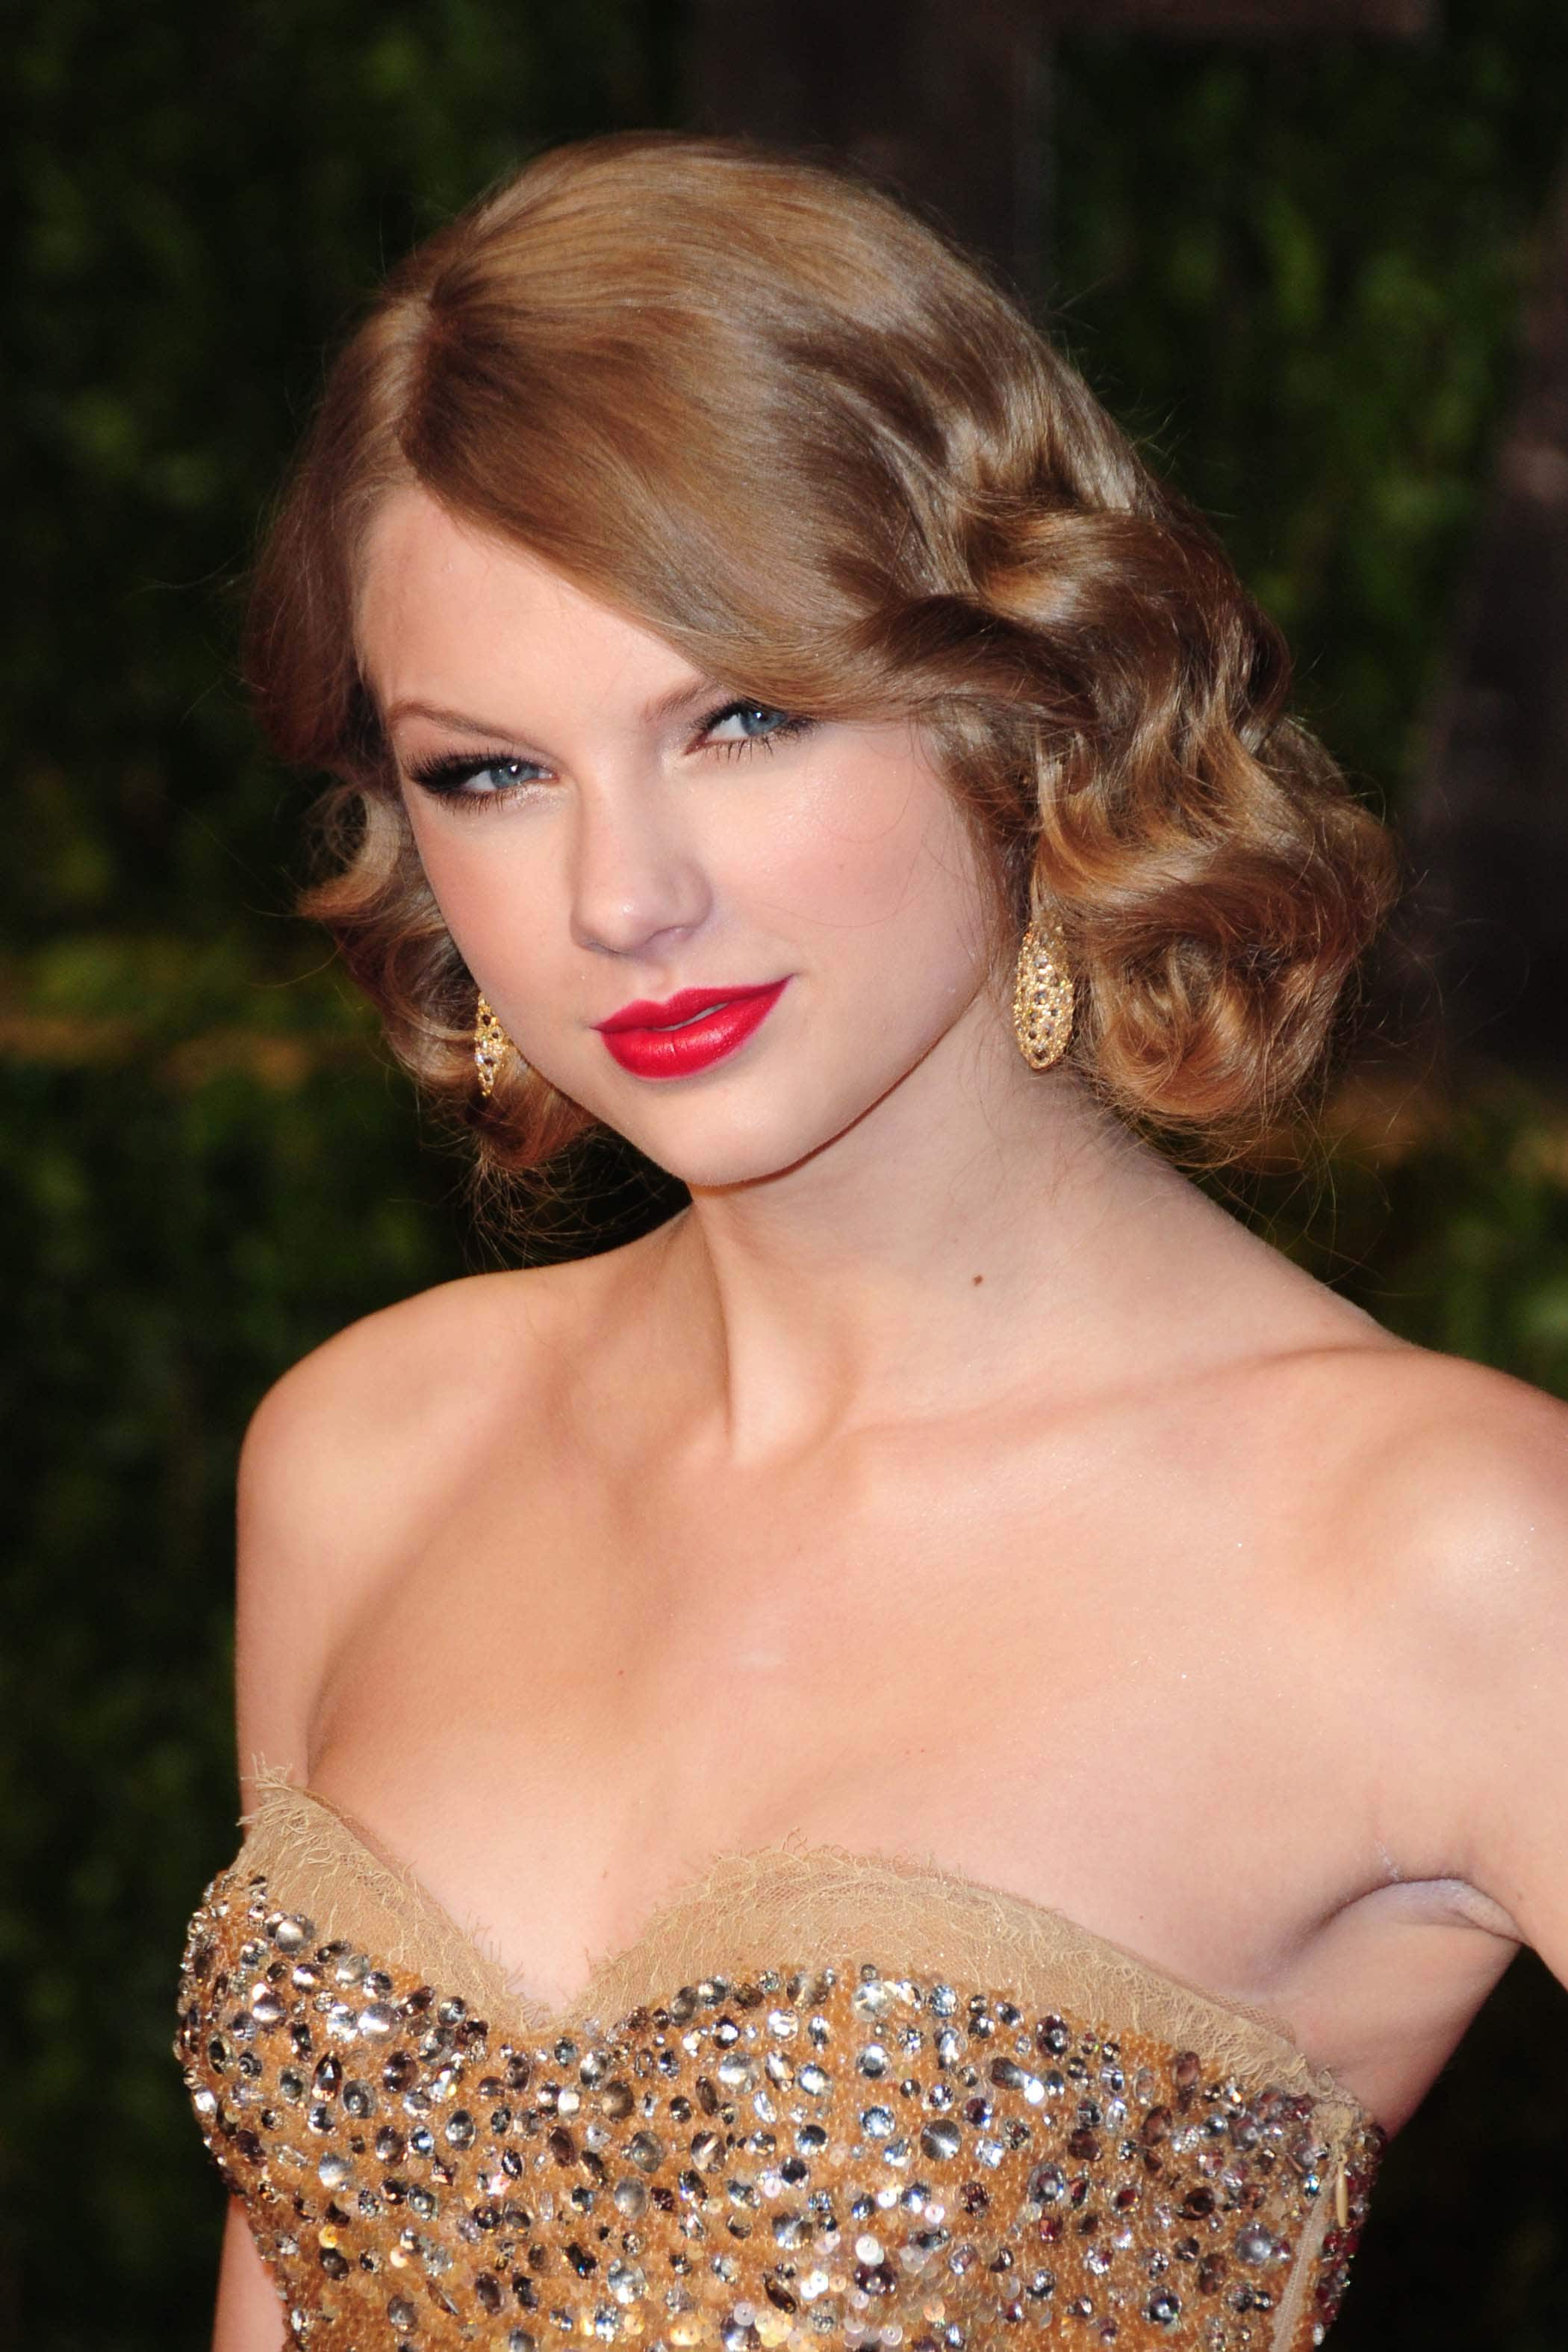 american singer taylor swift with a curly 1930s inspired faux bob hairstyle